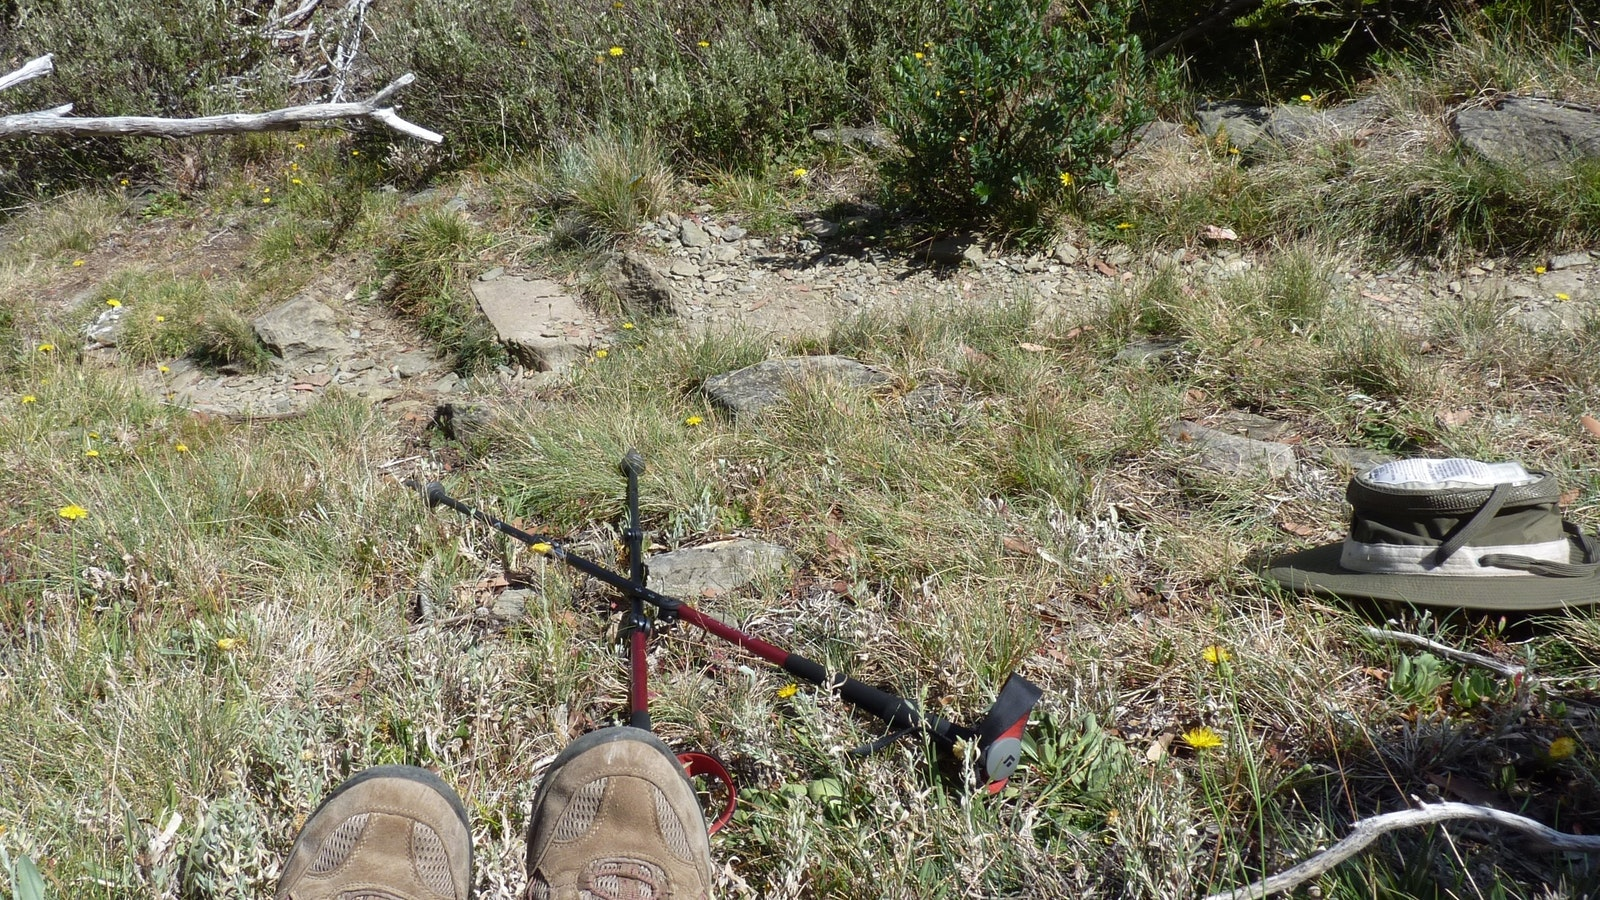 Bushwalking in the Alpine National Park with boots, poles and hat.